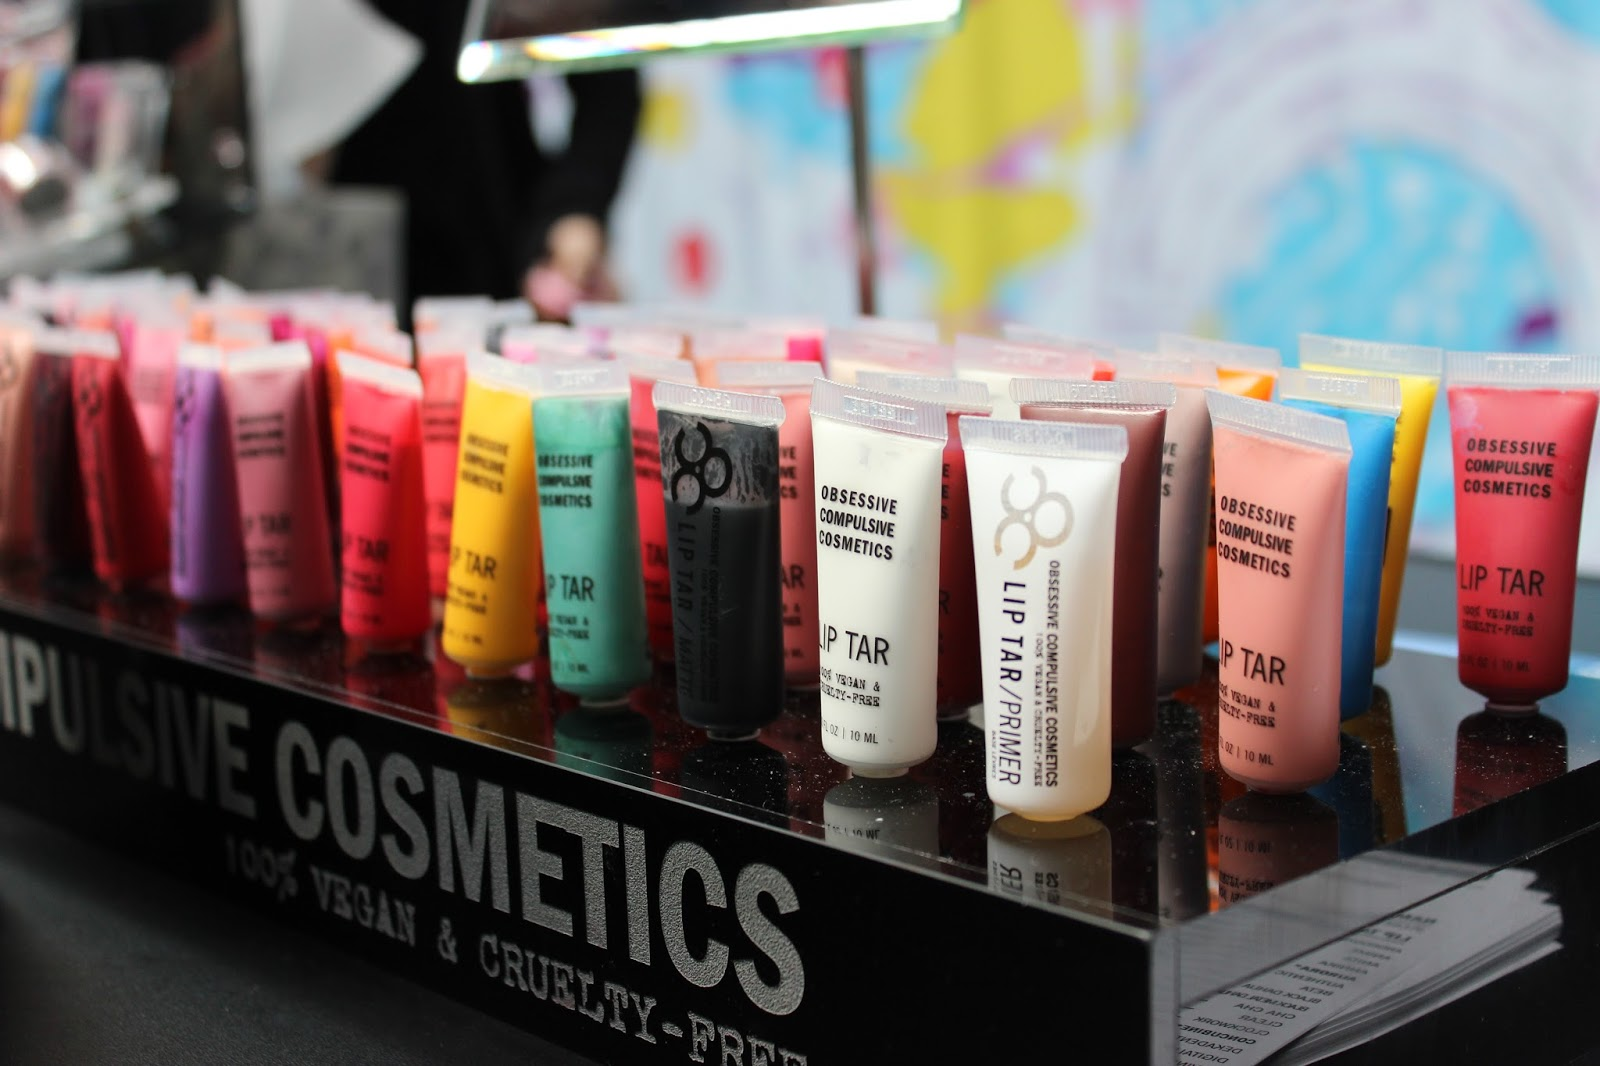 IMATS london 2014 occ lip tars